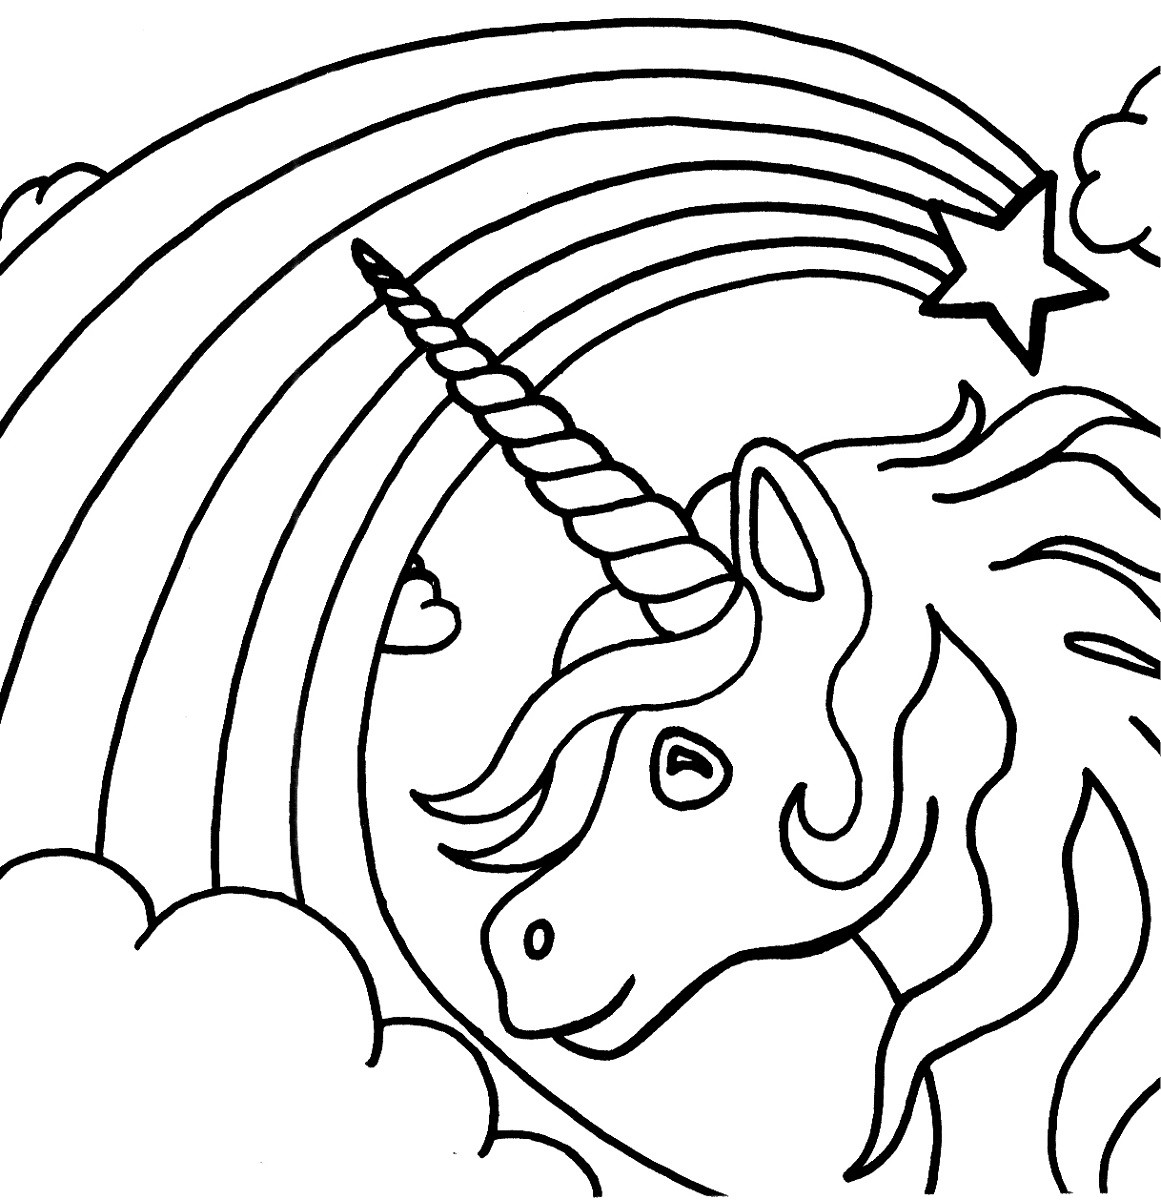 Unicorn Coloring Pages For Girls  Unicorn Color Pages for Kids